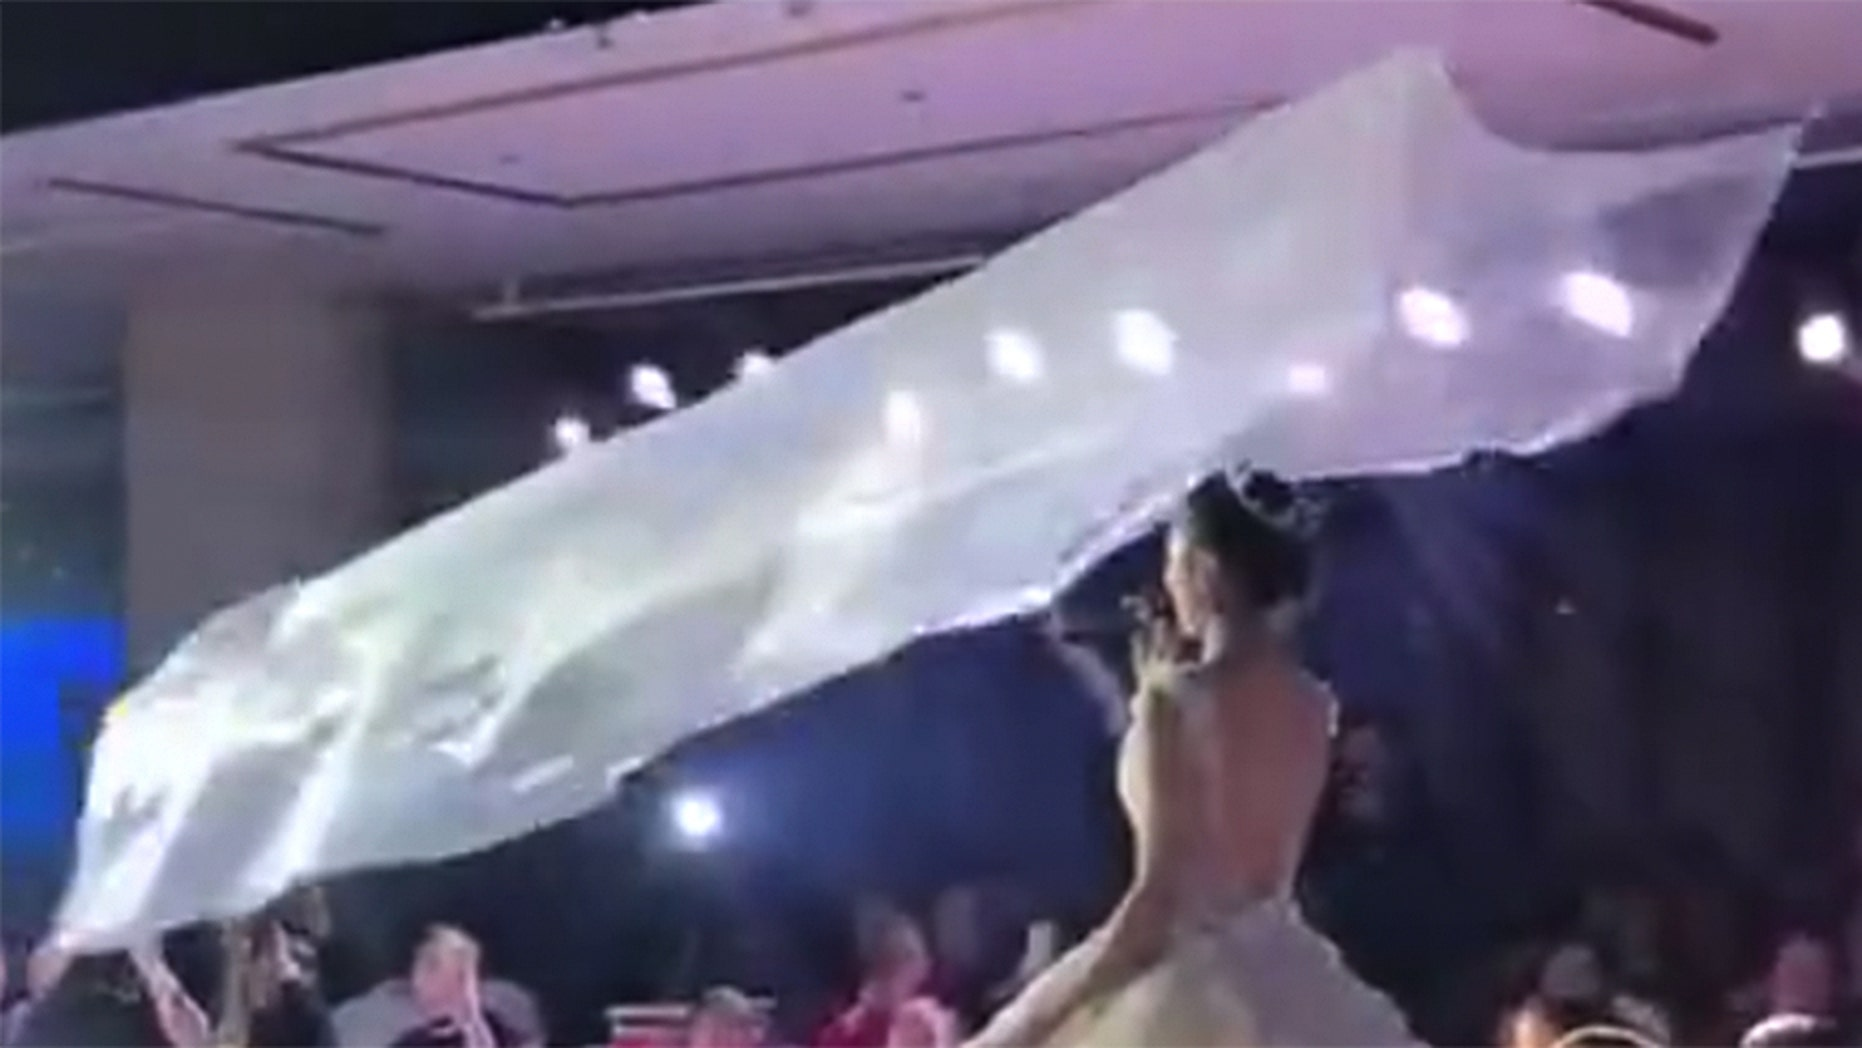 The flying veil trend involves weights, pulleys and ceiling rails.